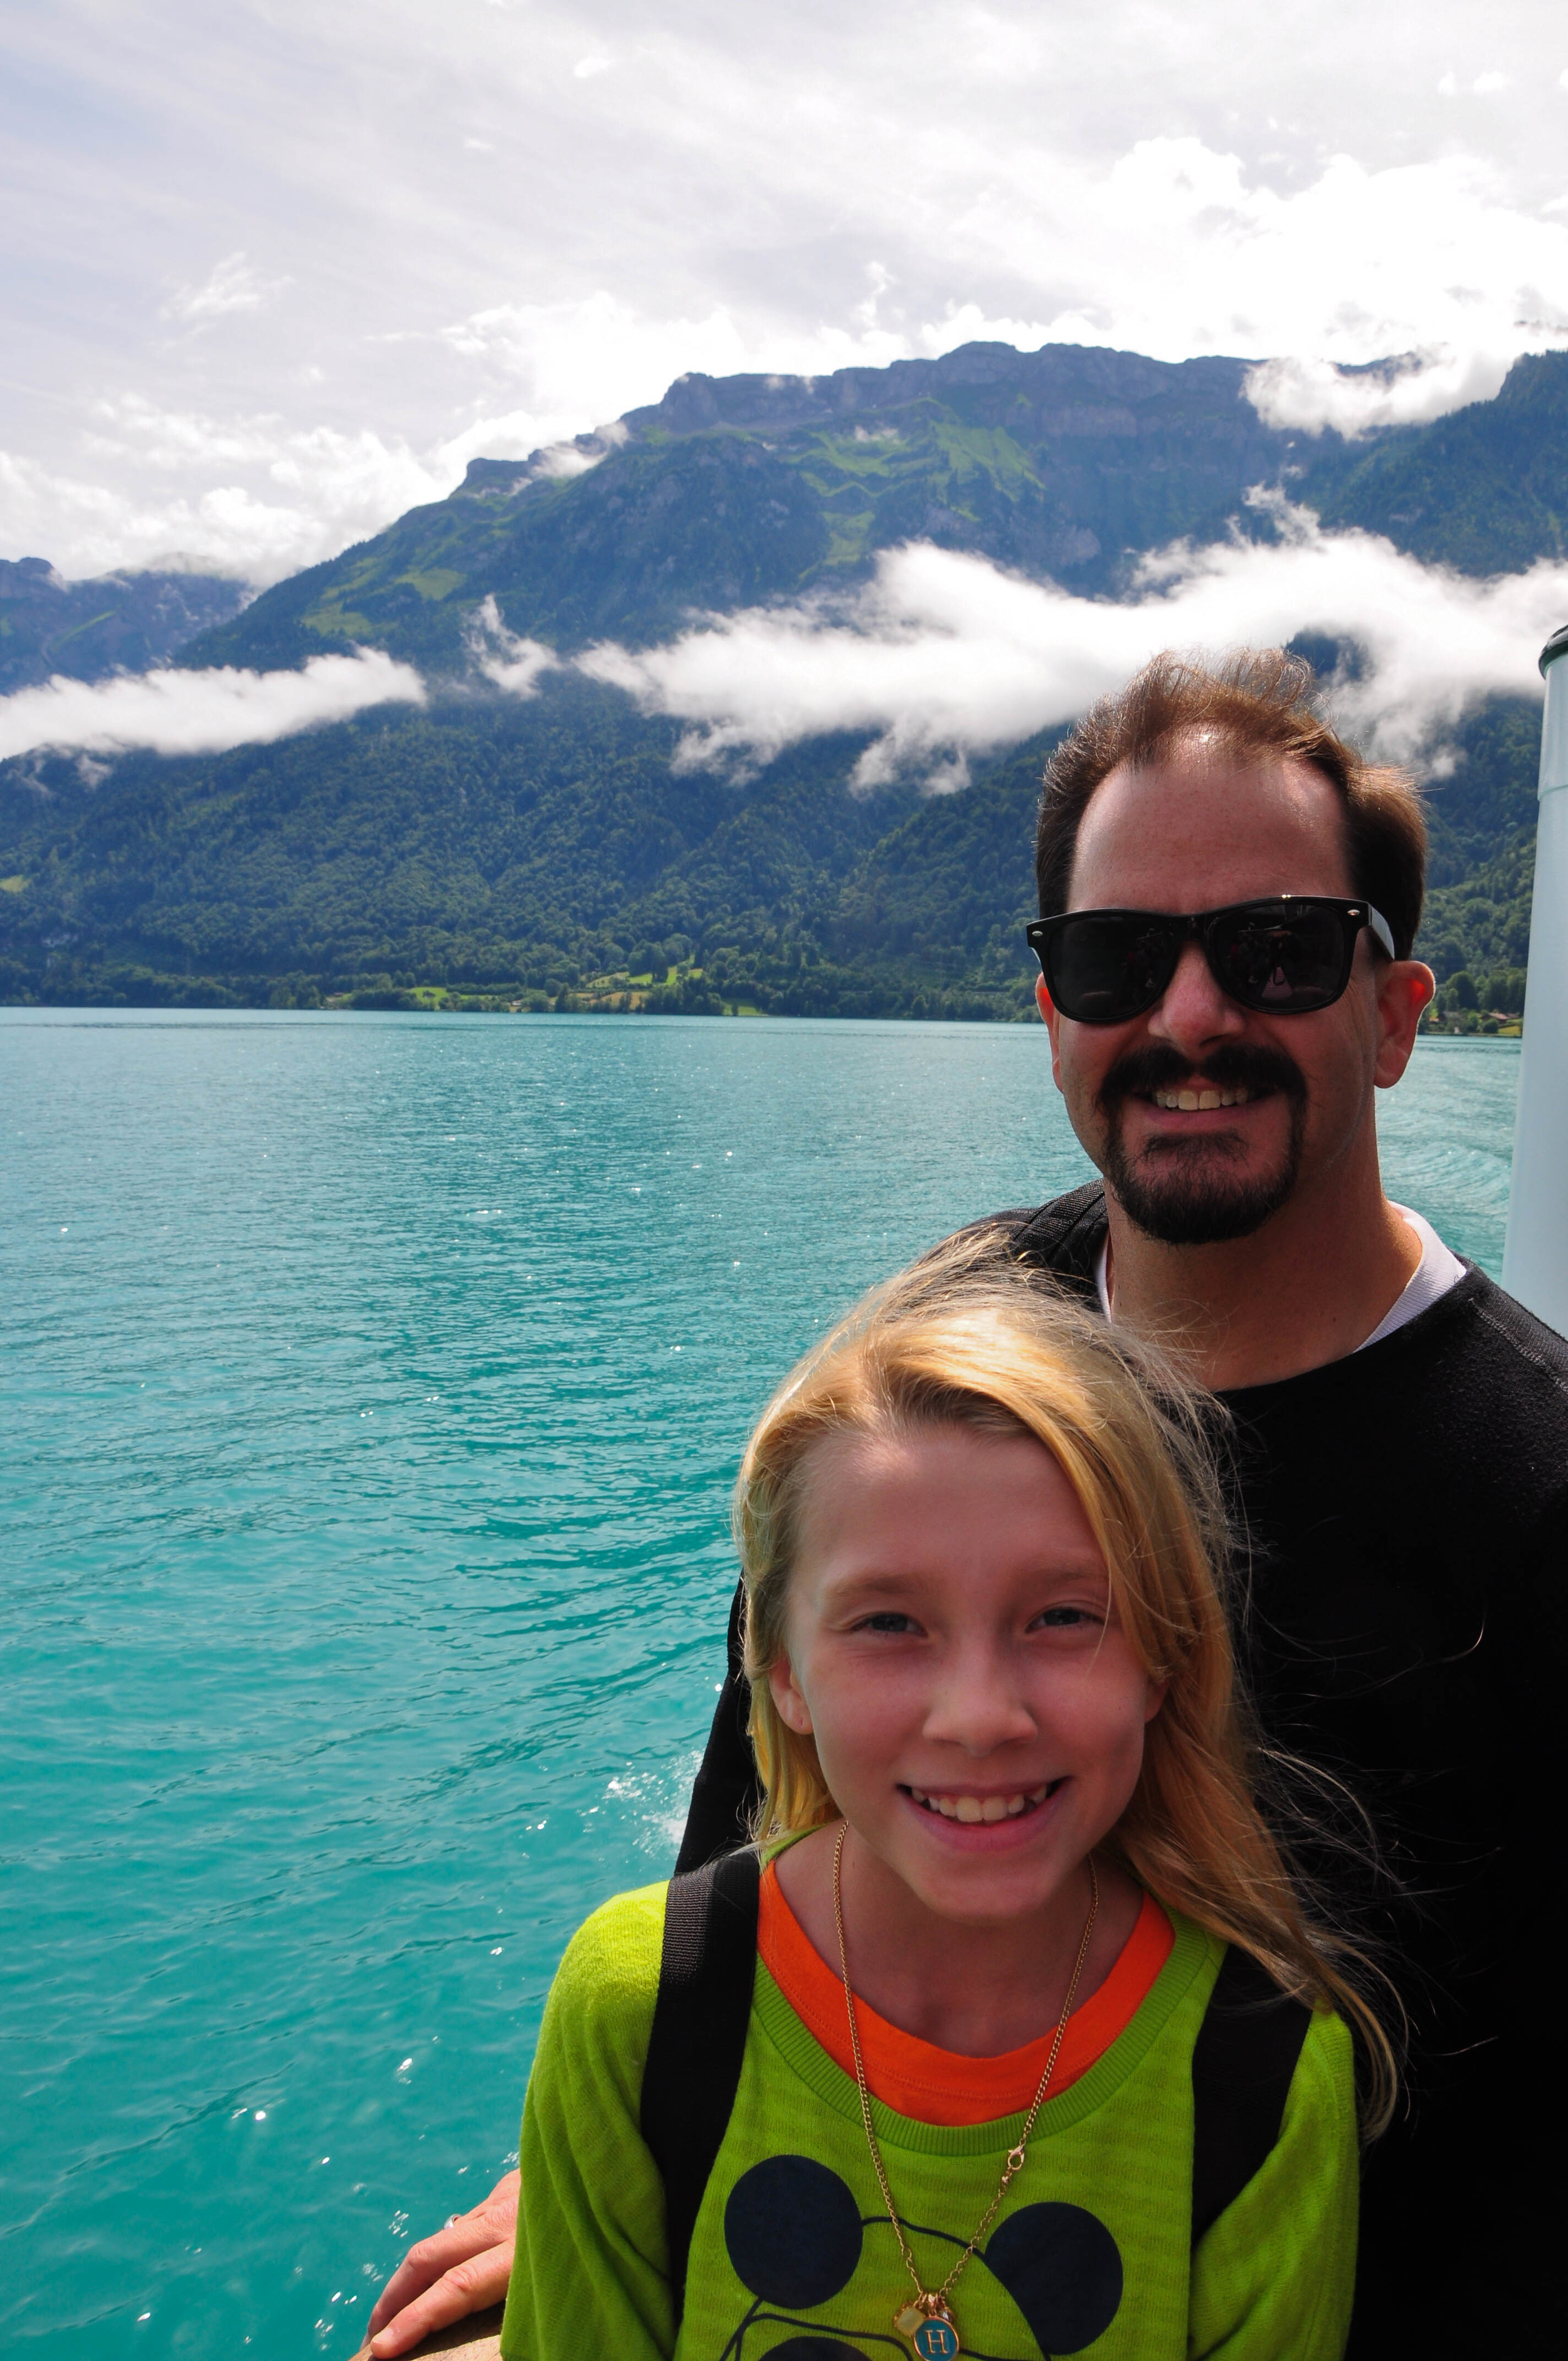 The Girl and the Man on Lake Brienz  ©Copyright 2015 Bridget Barnes